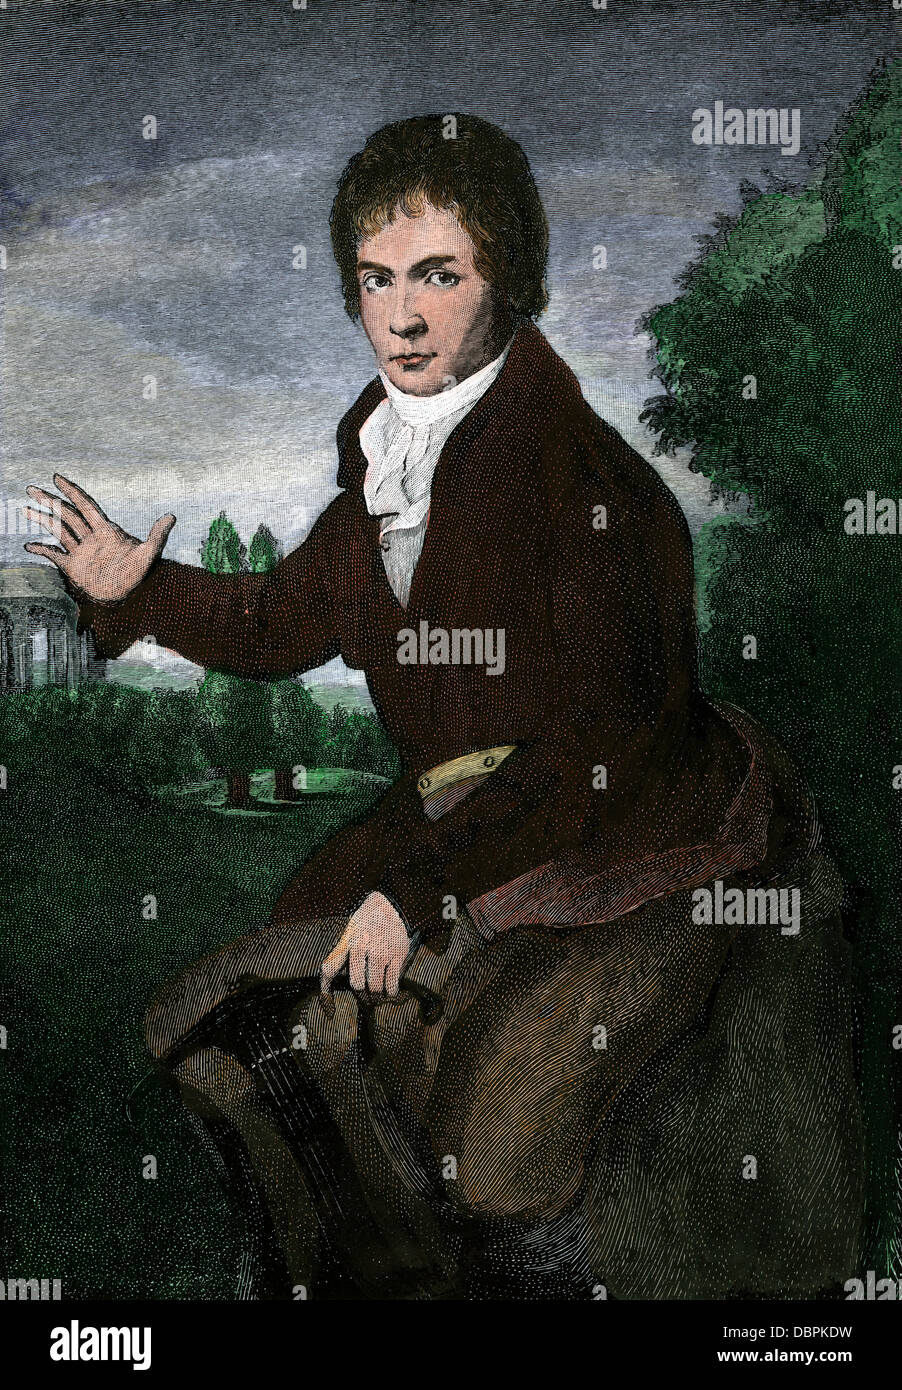 Ludwig van Beethoven at age 38. Hand-colored engraving from a portrait by W.F. Mahler - Stock Image